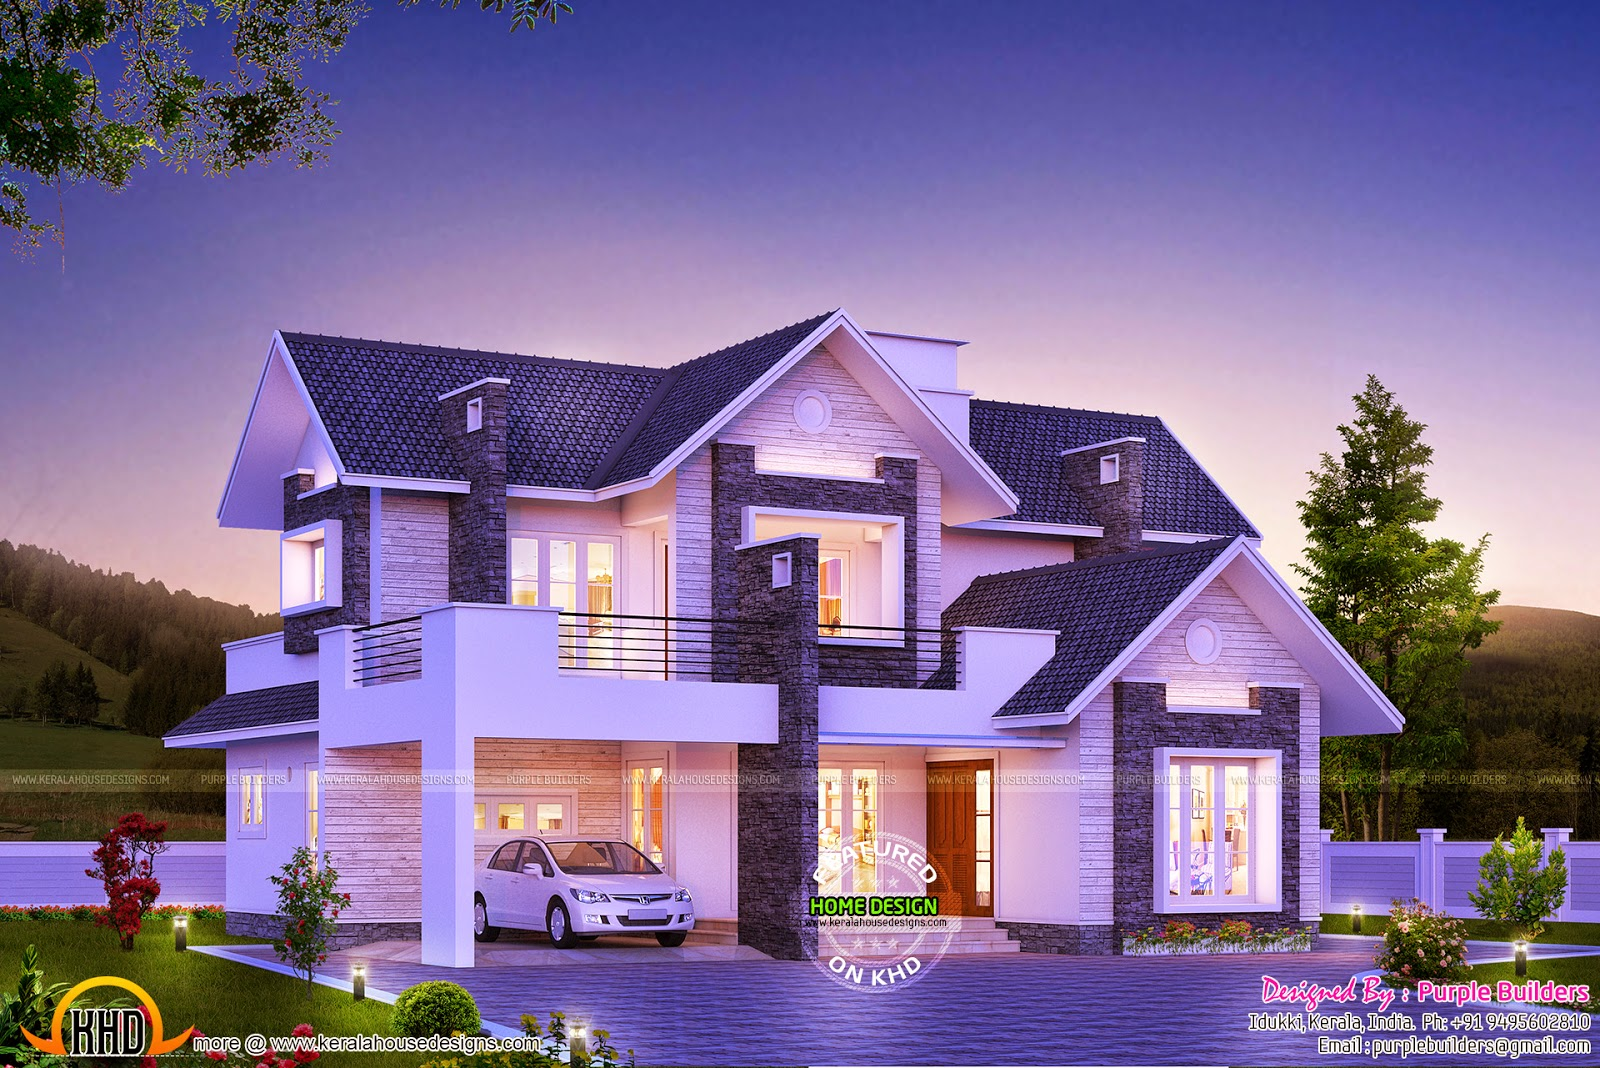 Design In The House Of Super Dream Home Kerala Home Design And Floor Plans